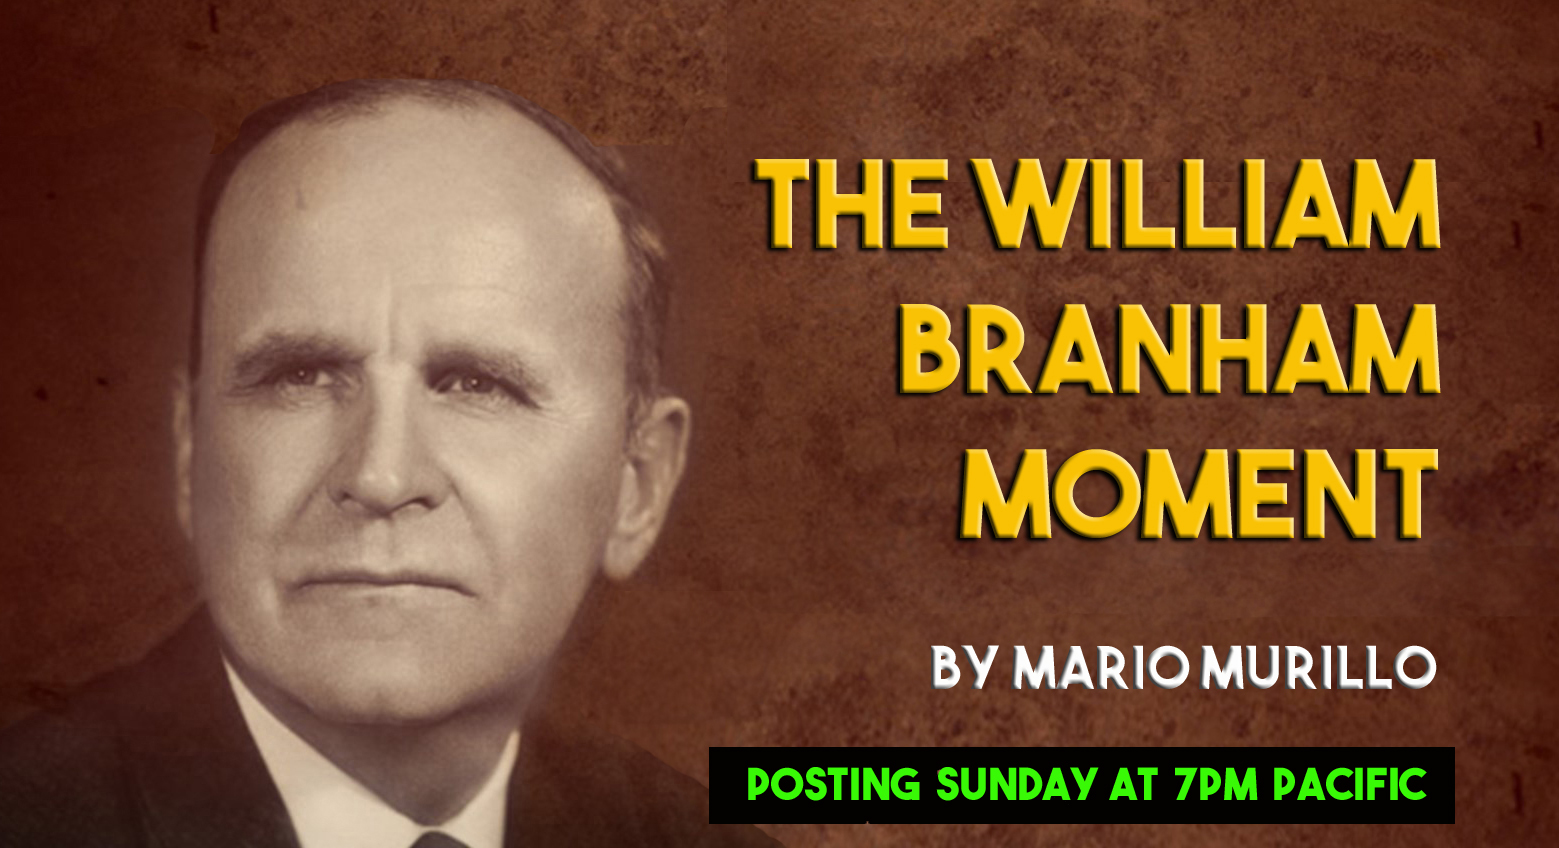 sermons by william marrion branham he Highlights in the life of william marrion branham from the minute he was born  (april 6, 1909), william branham was set apart from the ordinary right after he.